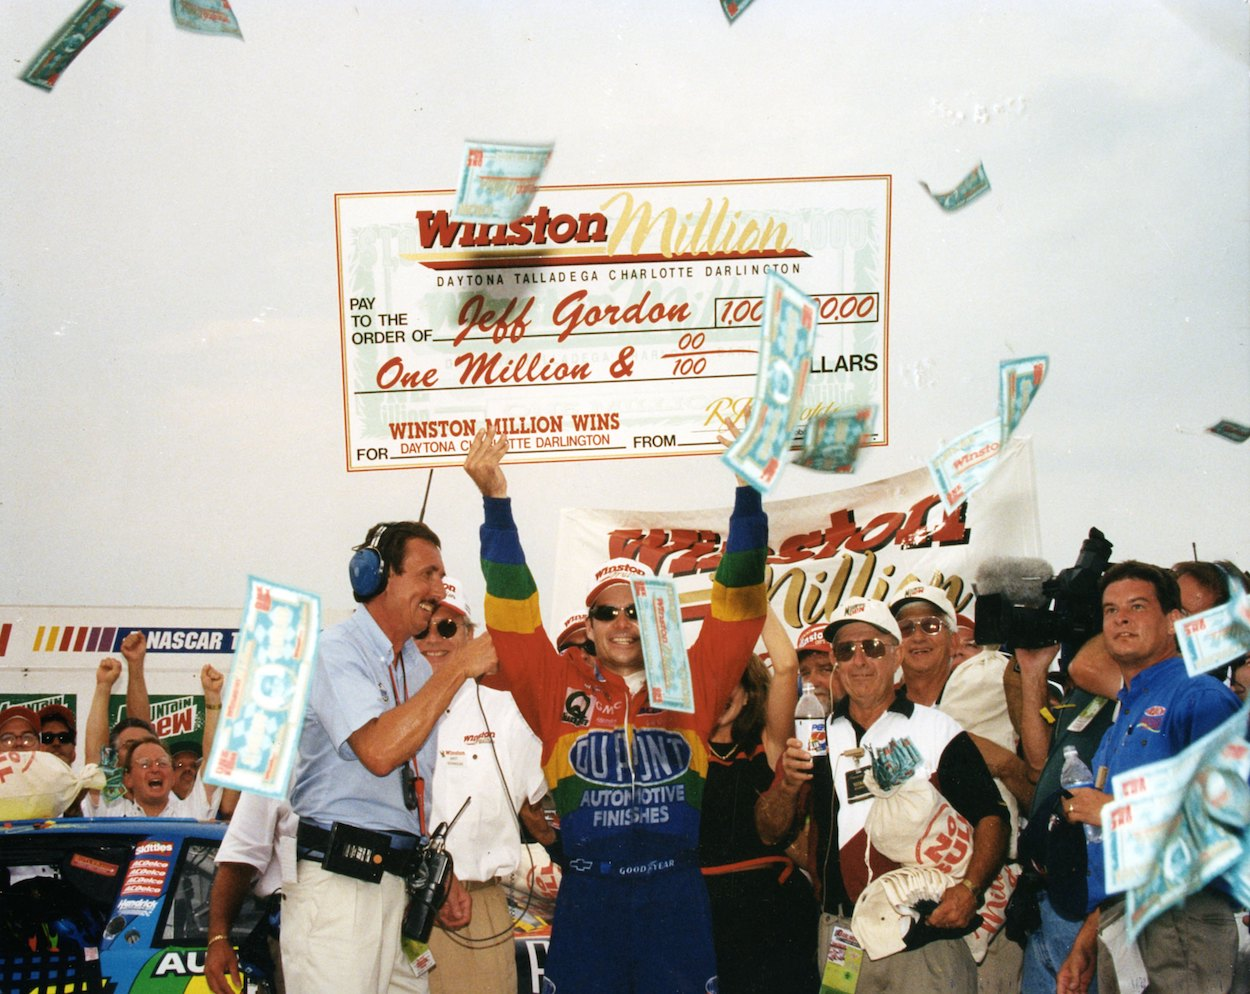 Jeff Gordon earned a historic $1 million payday at Darlington in 1997 thanks to one of the most famous blocks in NASCAR history.